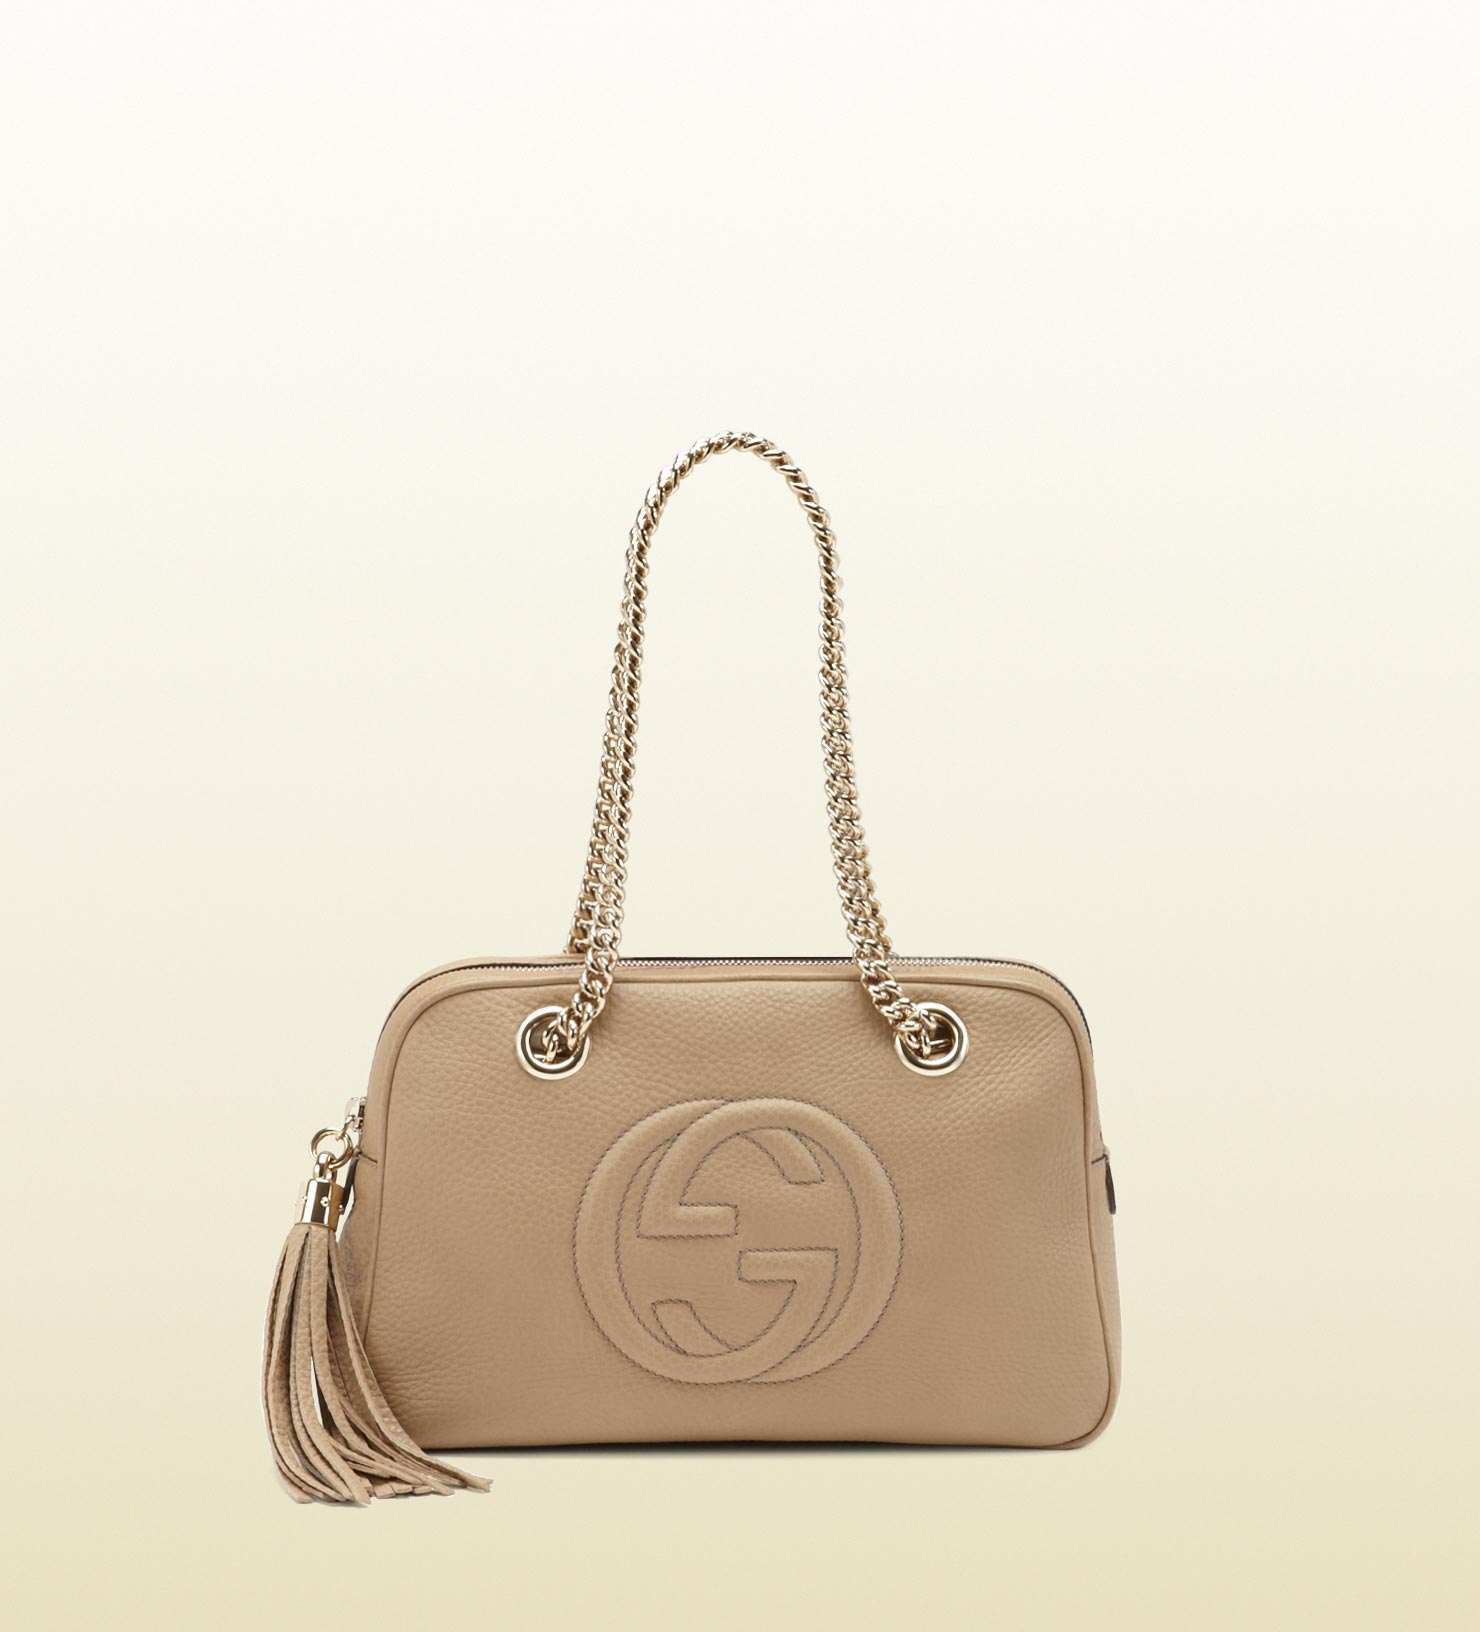 0aa24816e4cd Lyst - Gucci Soho Leather Shoulder Bag in Natural